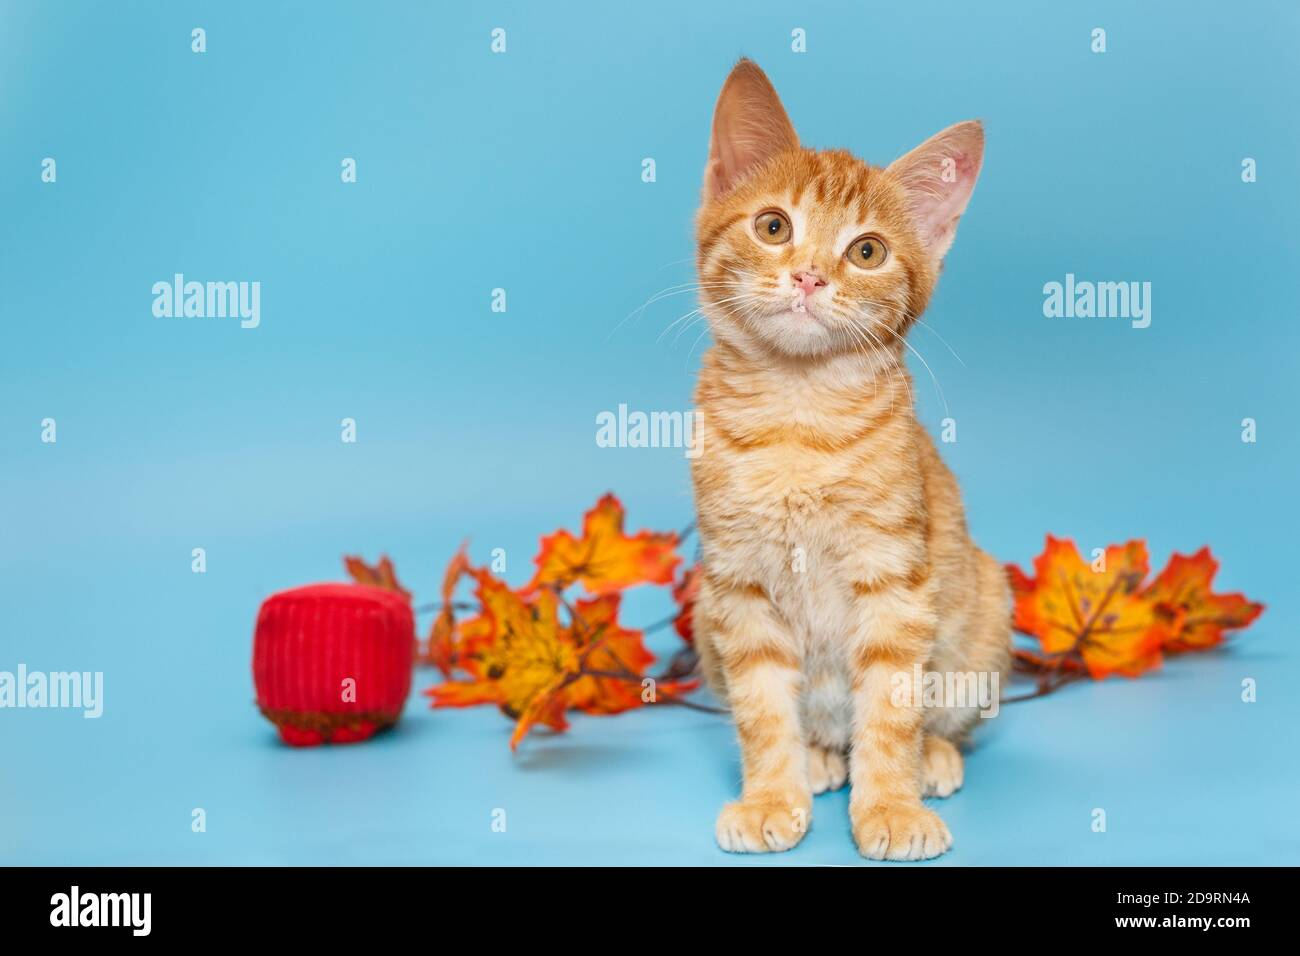 Small red kitten and autumn leaves on a blue background Stock Photo